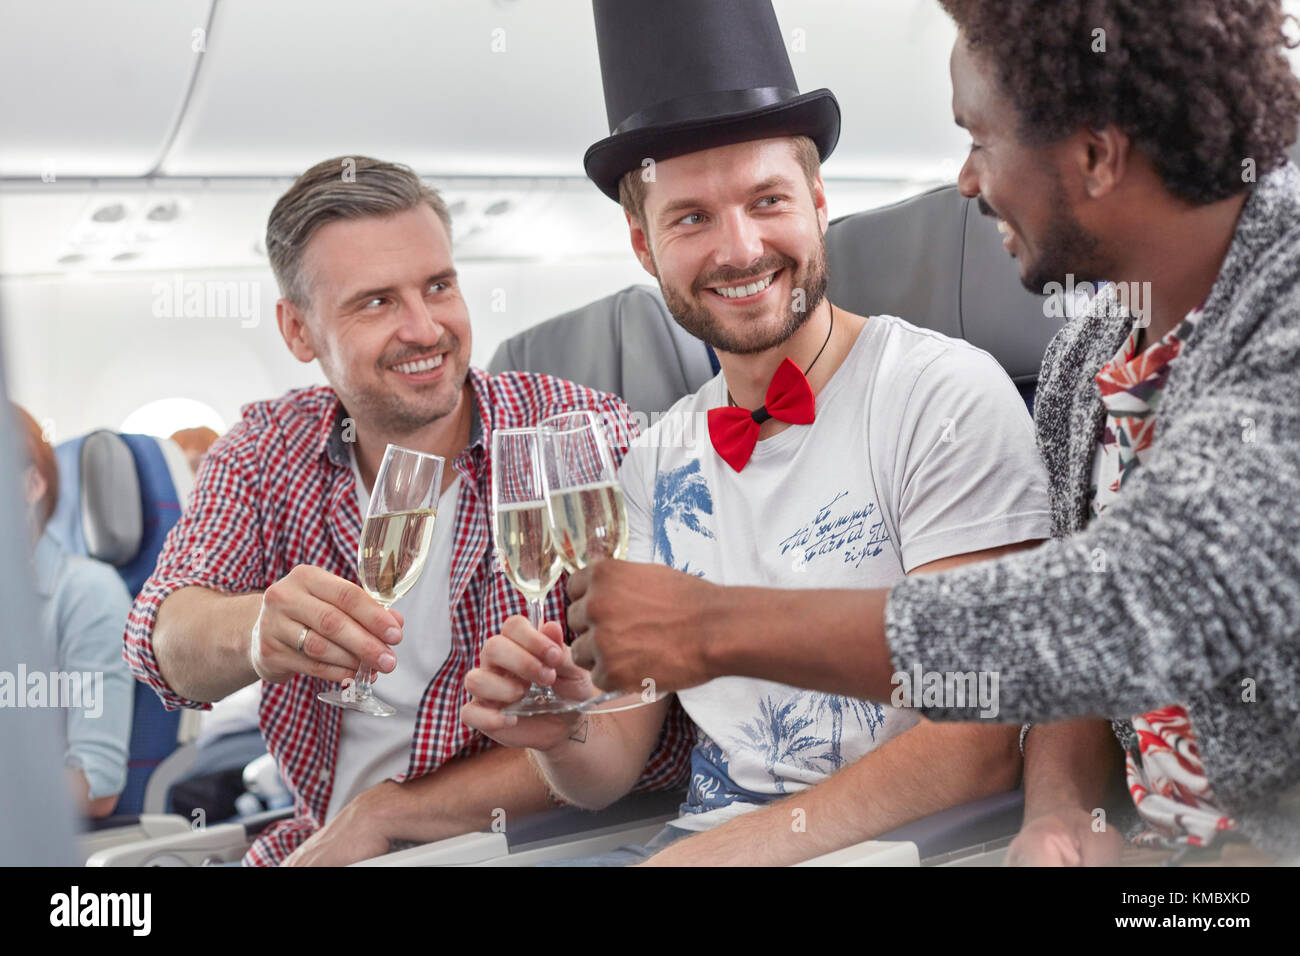 Young male friends toasting champagne glasses on airplane - Stock Image